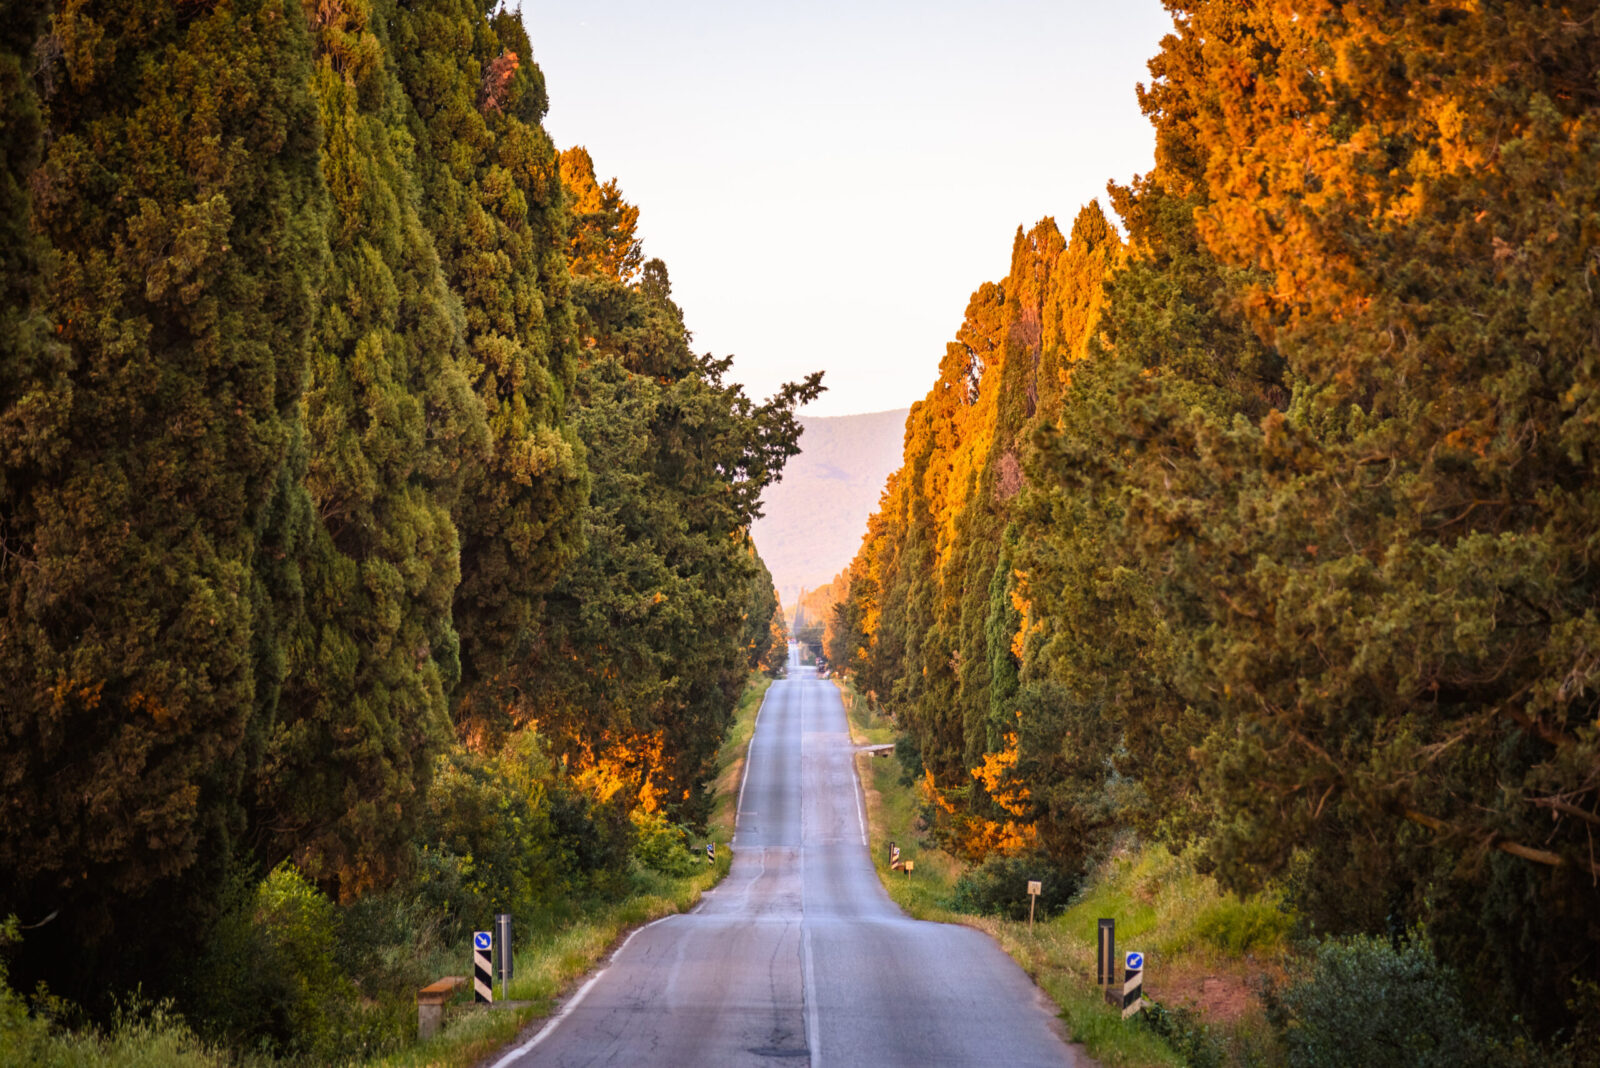 Famous road amidst by cypress trees in Tuscany near the town of Bolgheri, Italy.